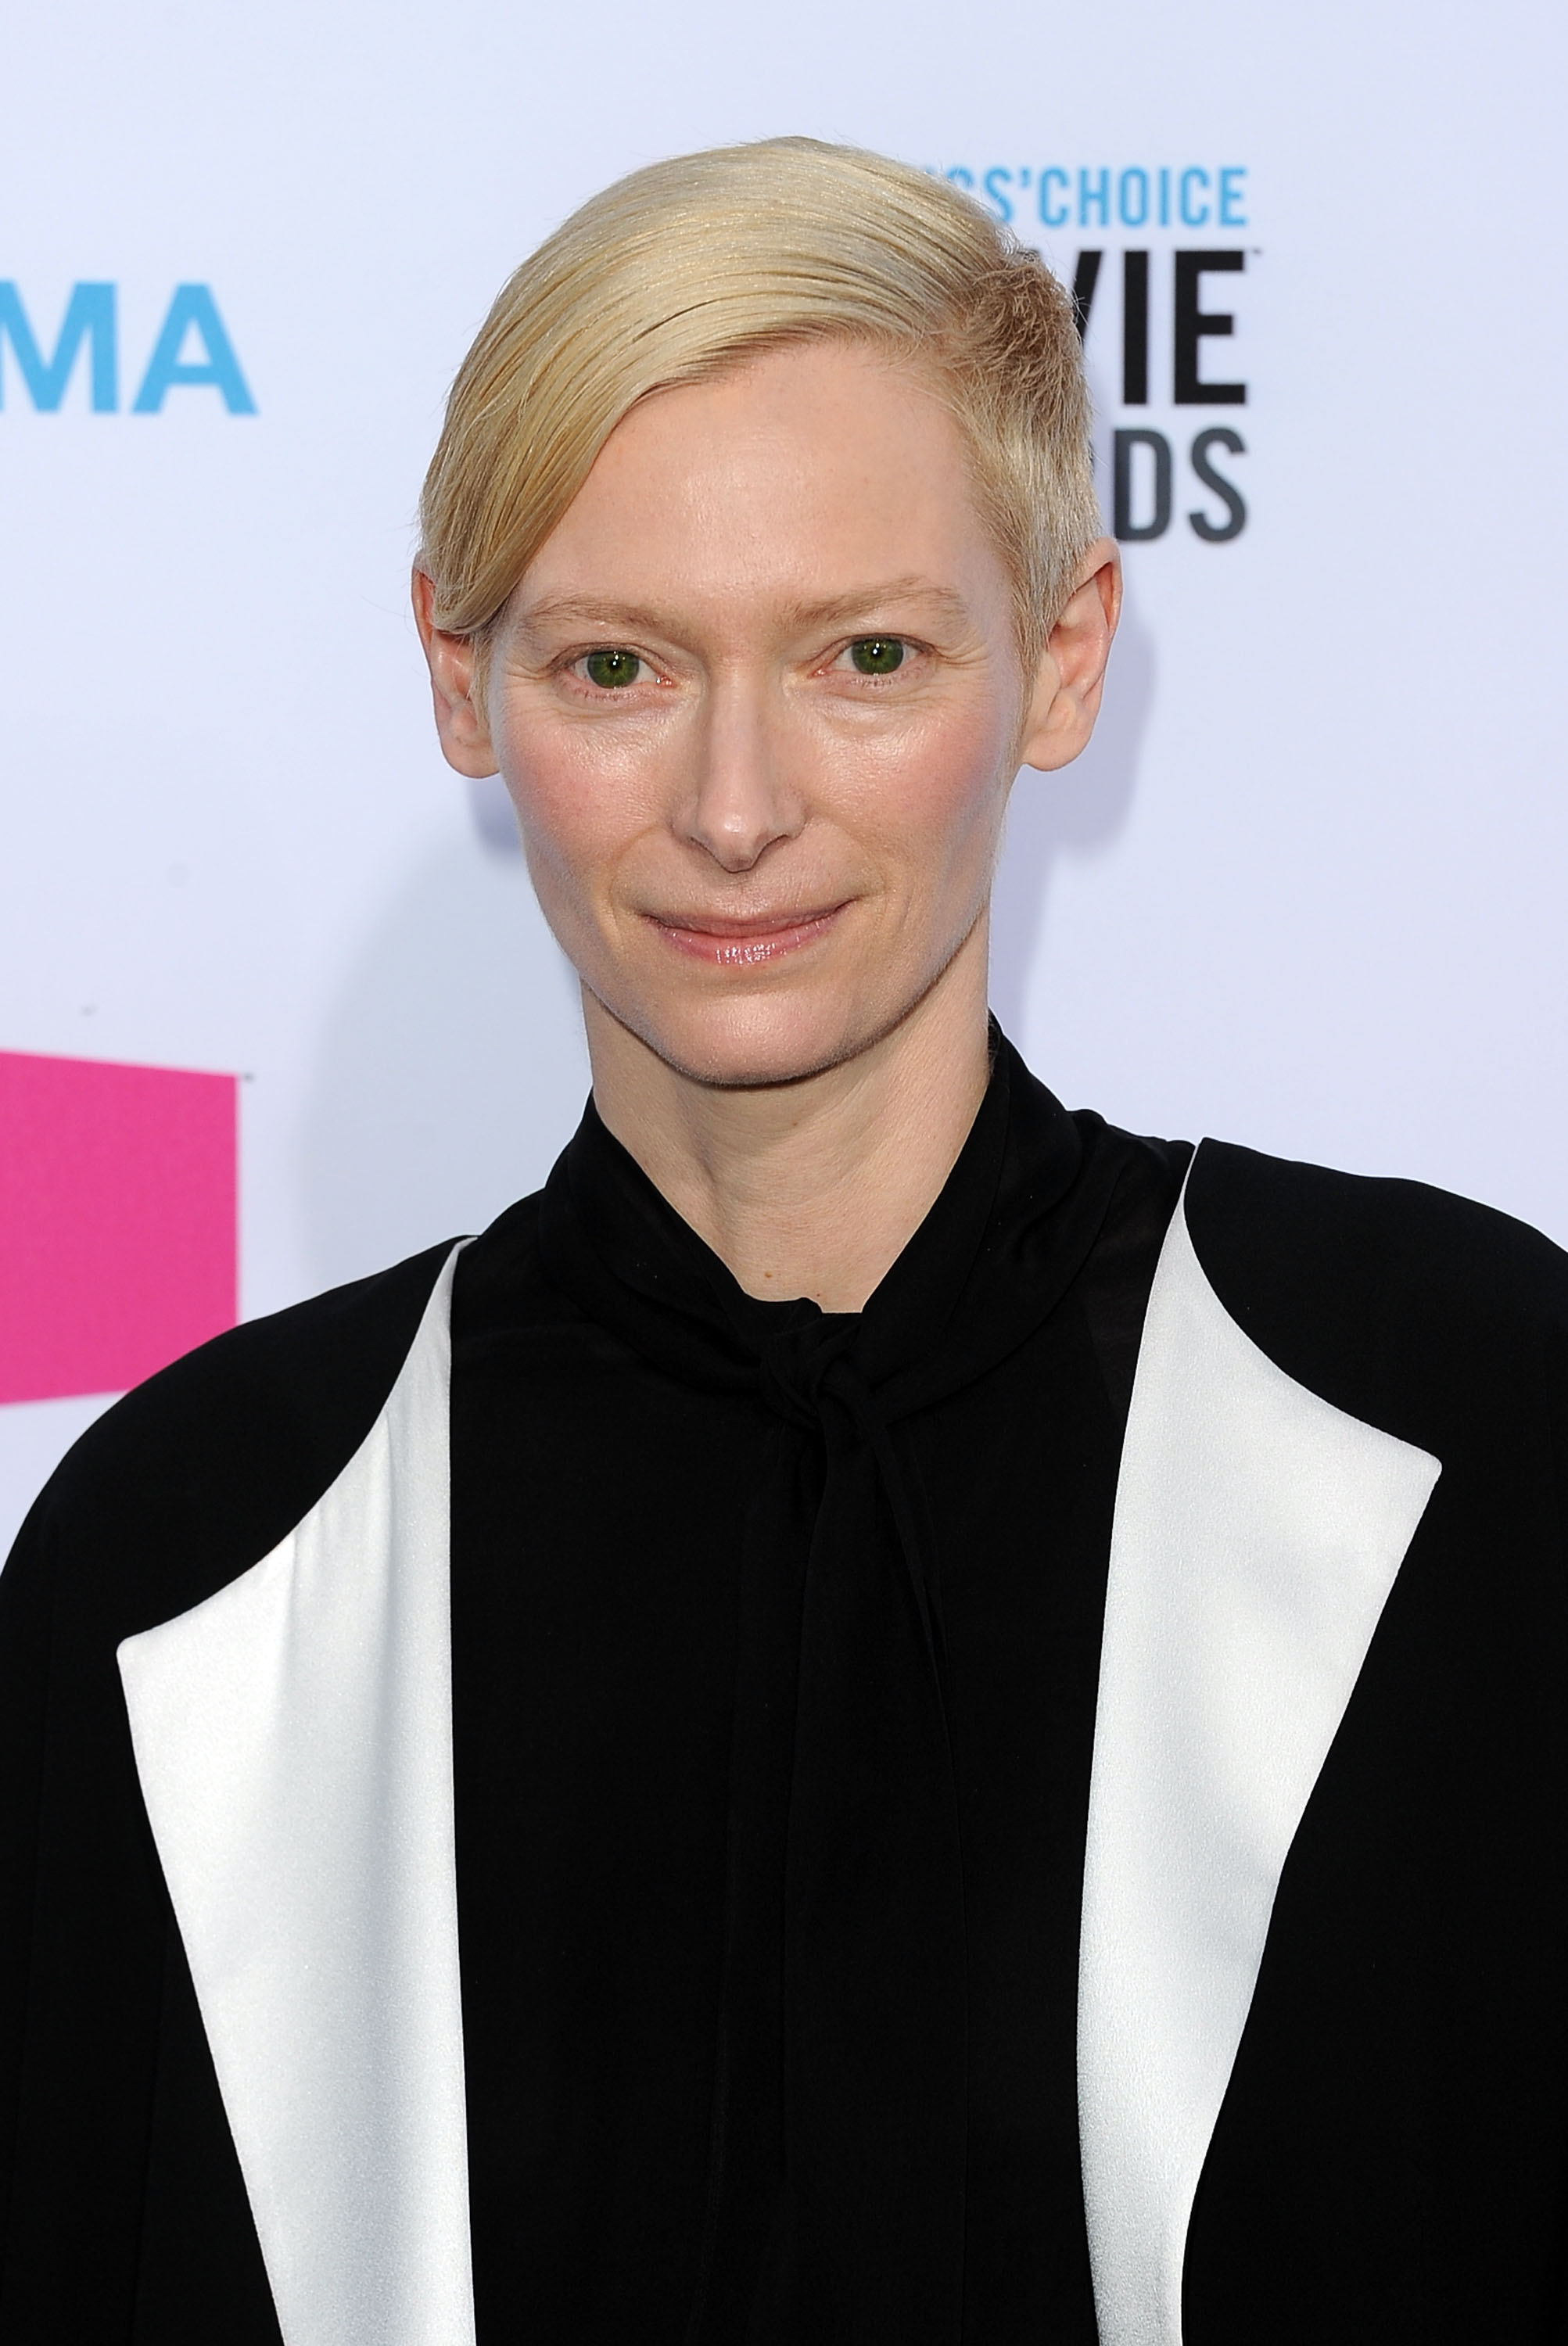 Tilda Swinton at the Critics' Choice Movie Awards.